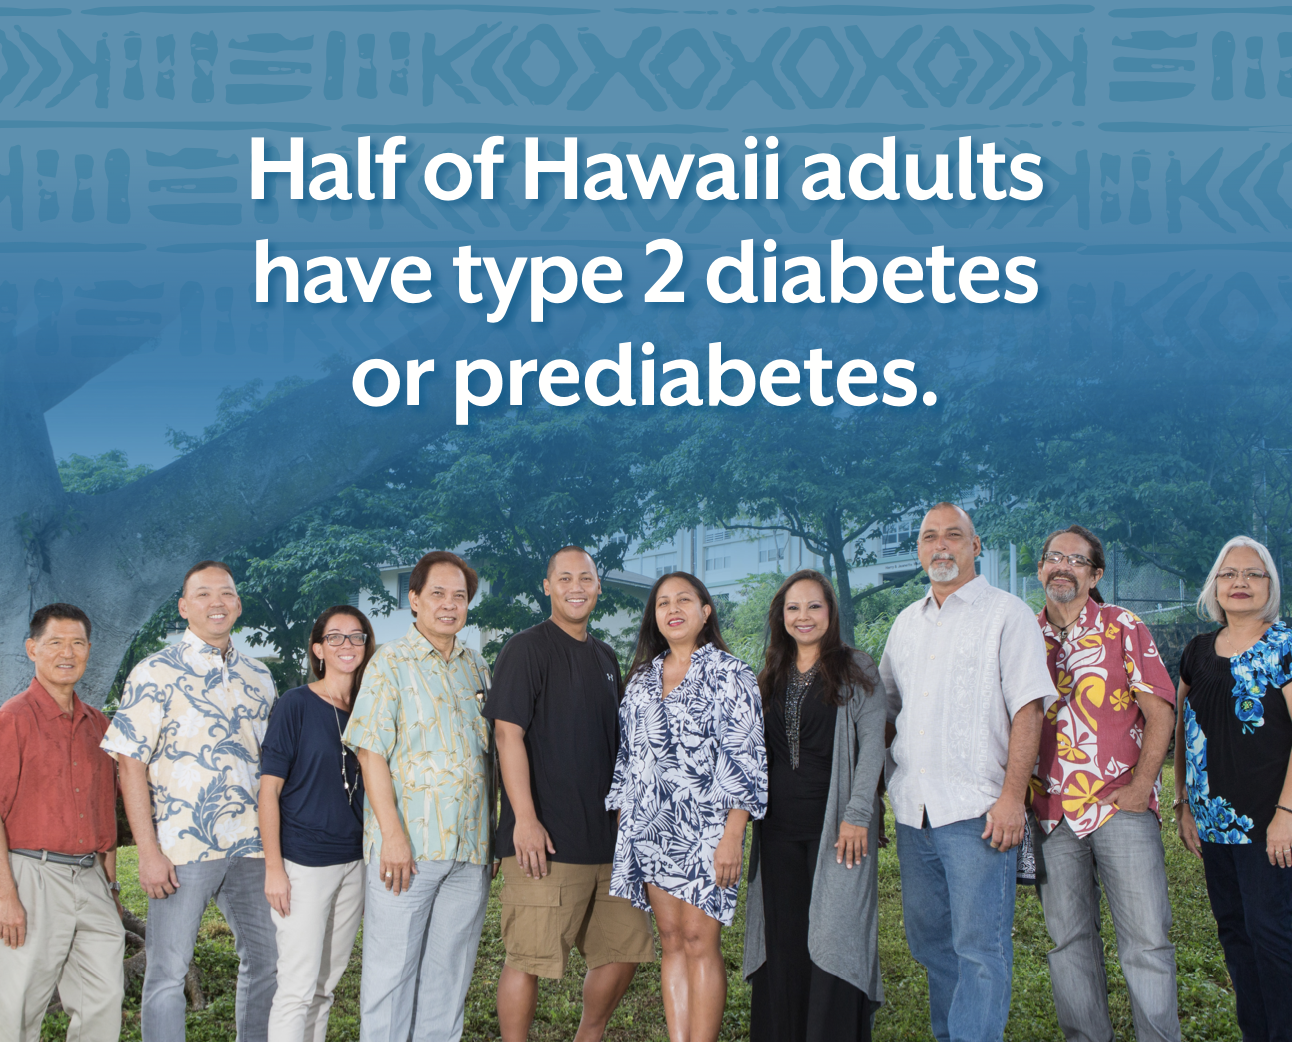 DOH: Know Your Risk, Prevent Diabetes